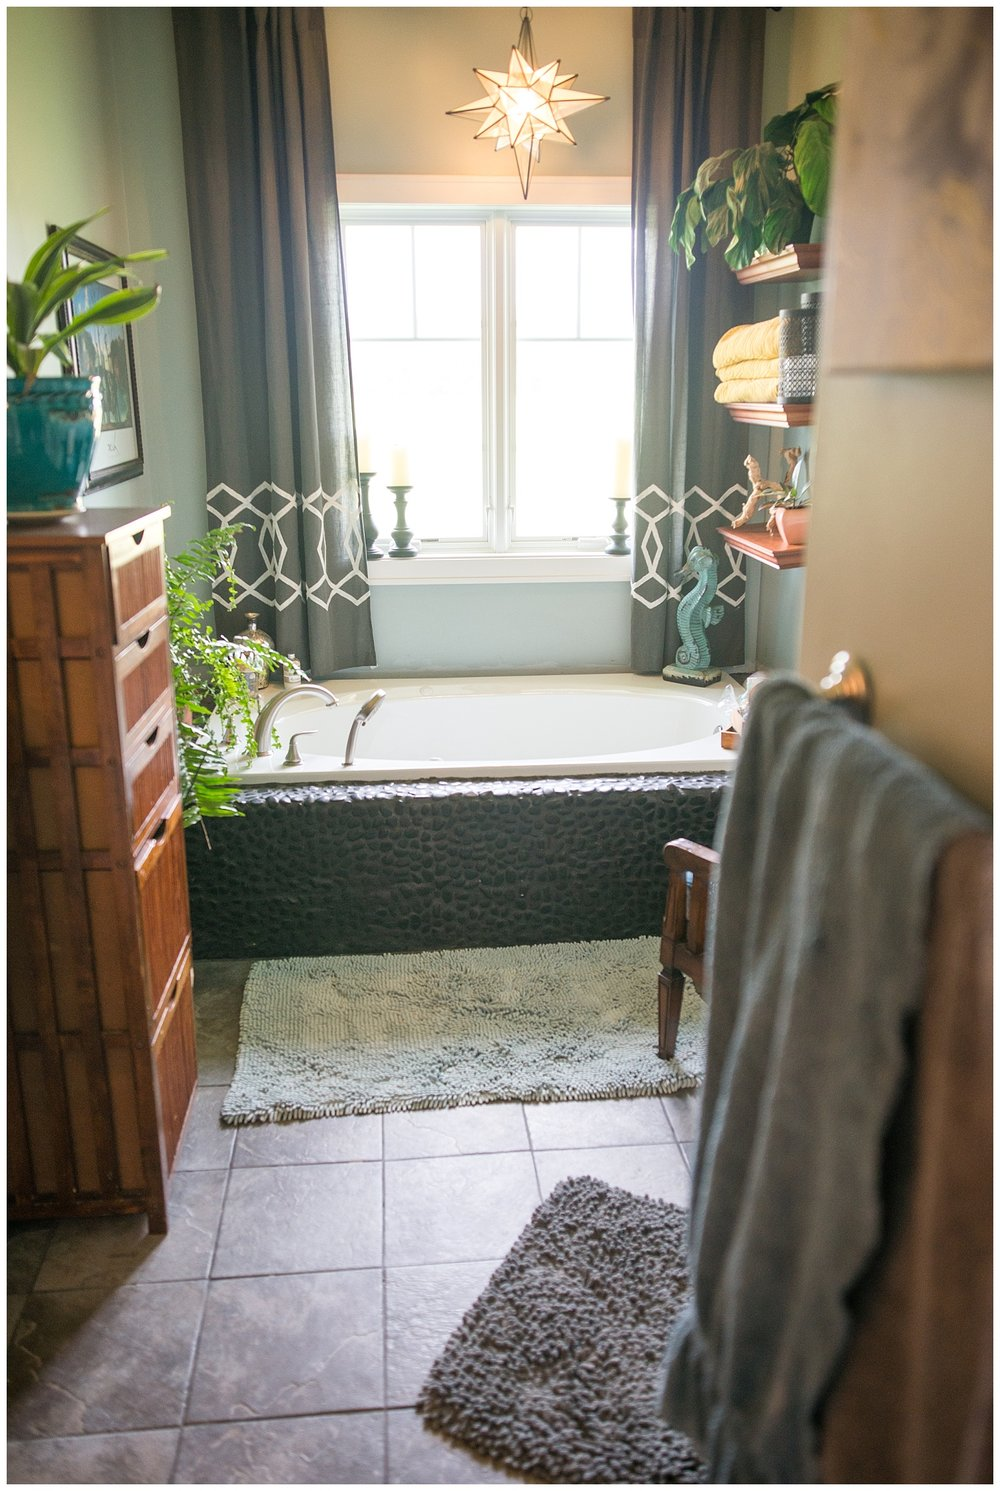 I had no idea this spa-like en suite existed until we did this photo shoot.  Pretty sure I could live out my days in just her bedroom and bathroom.  That fabulous black rock tub?  They did it themselves.  These two are legit DIYers.